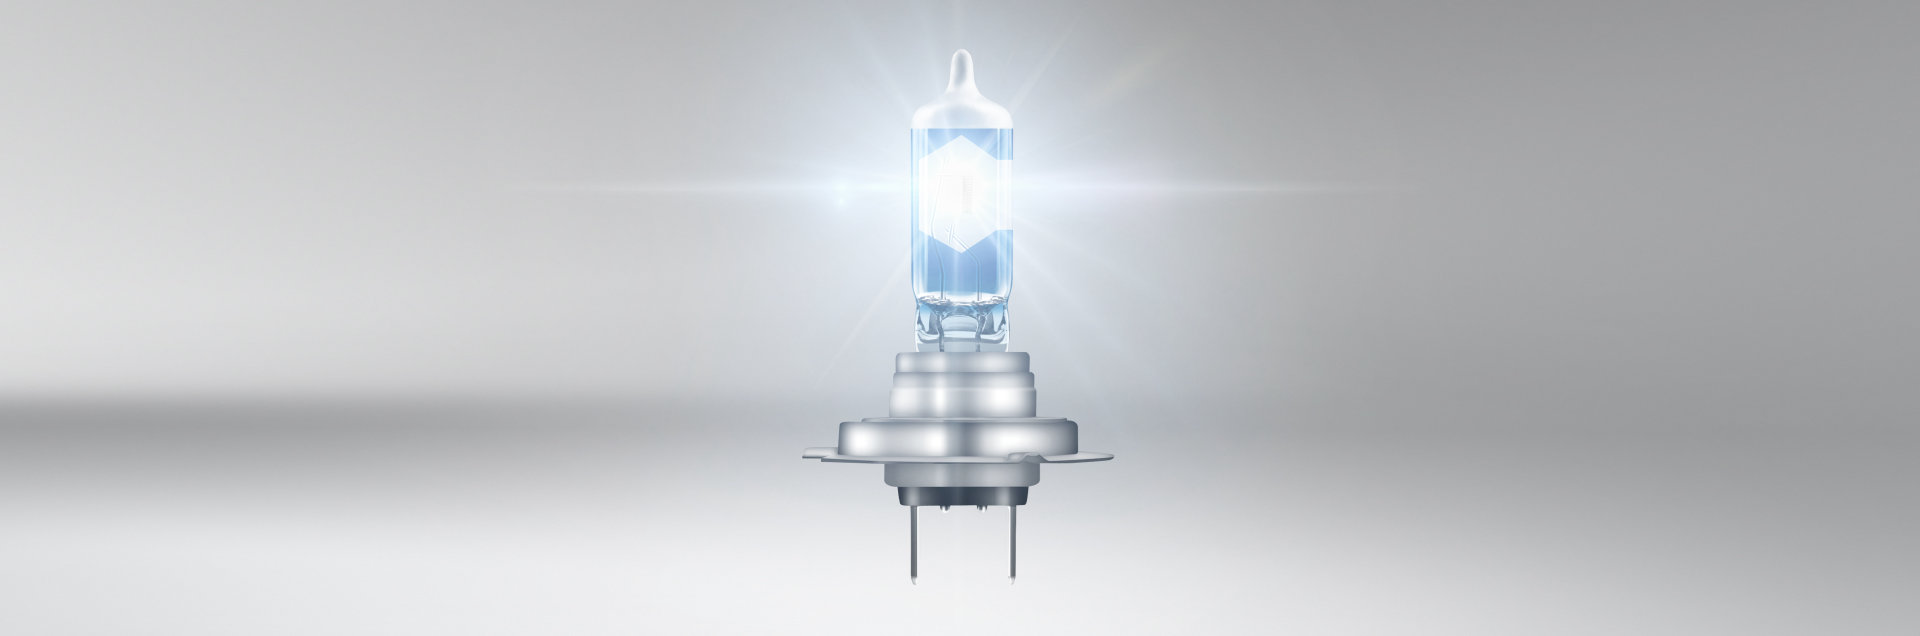 Osram lamps: types, characteristics, purpose and reviews 59